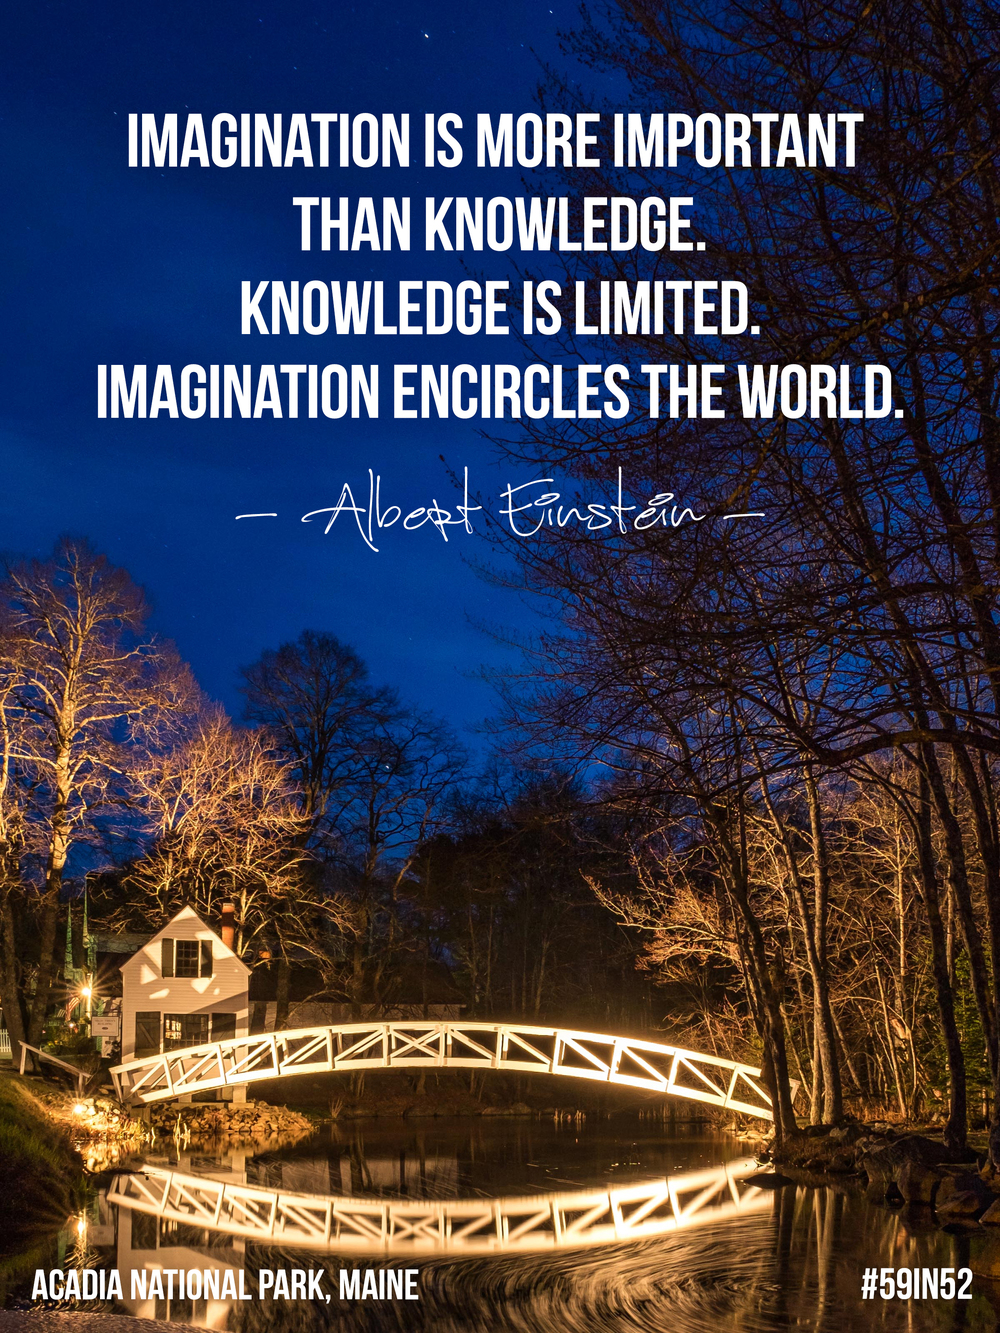 """ Imagination is more important than knowledge. Knowledge is limited. Imagination encircles the world."" - Albert Einstein"